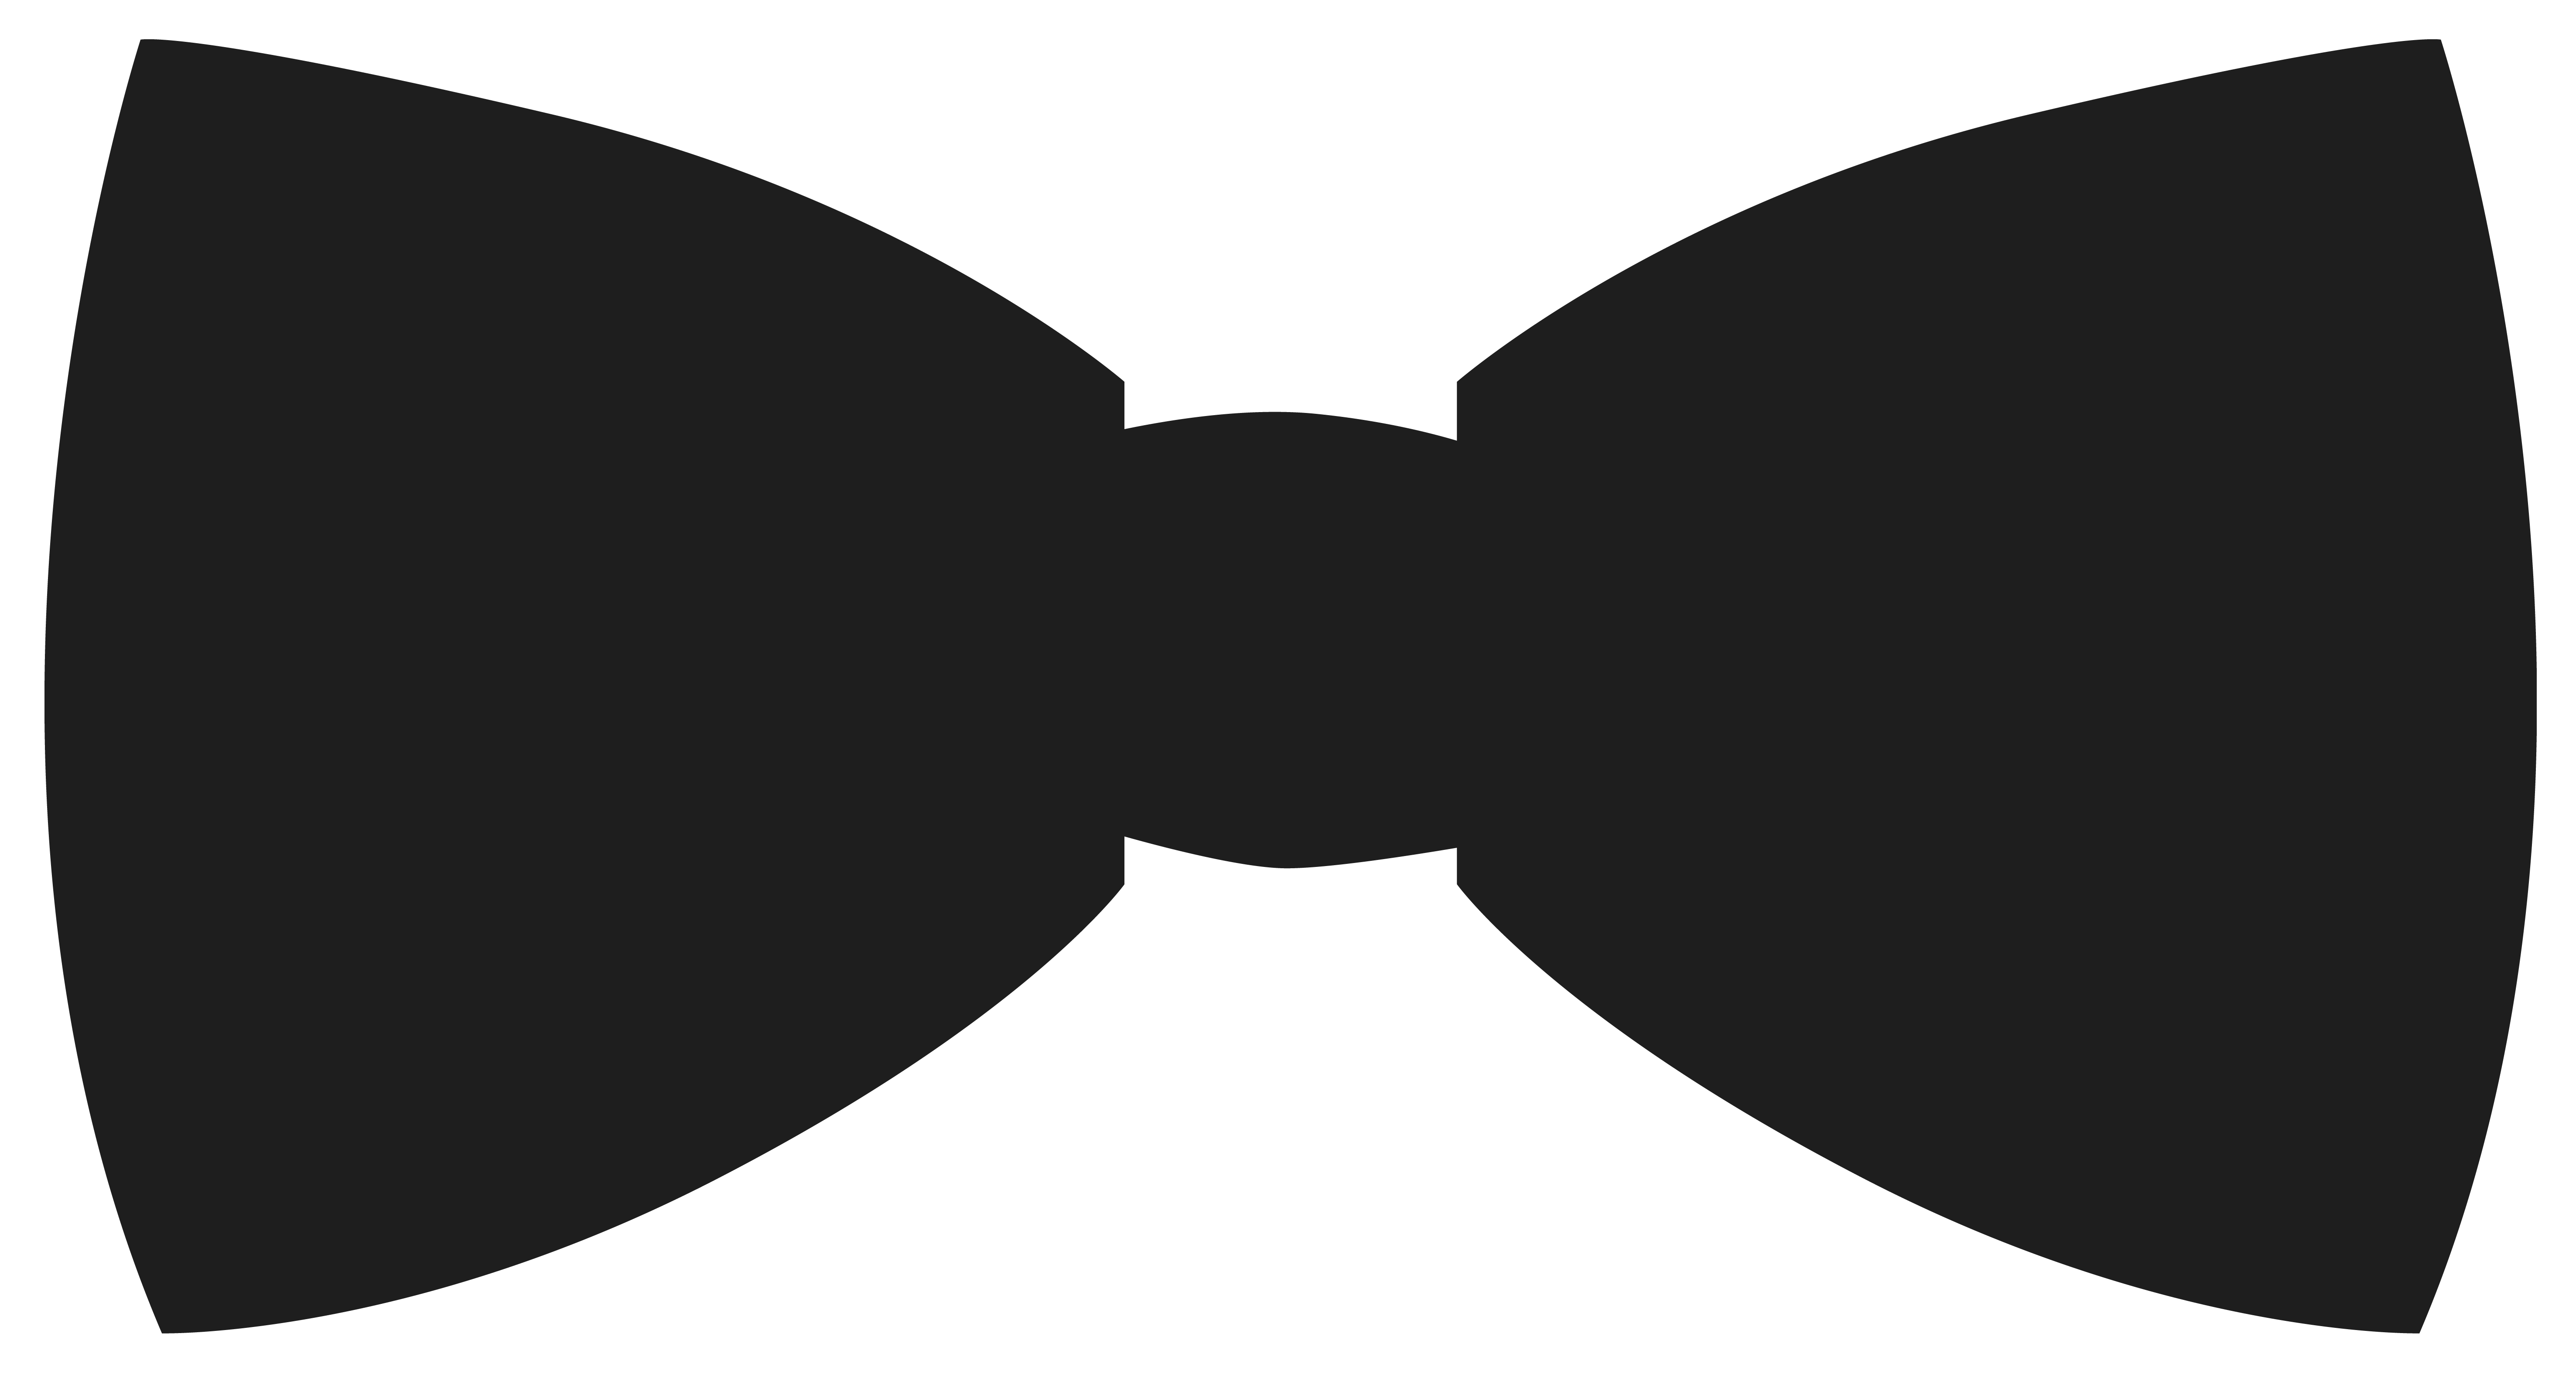 transparent download  bow or chester. Bowtie clipart suspenders